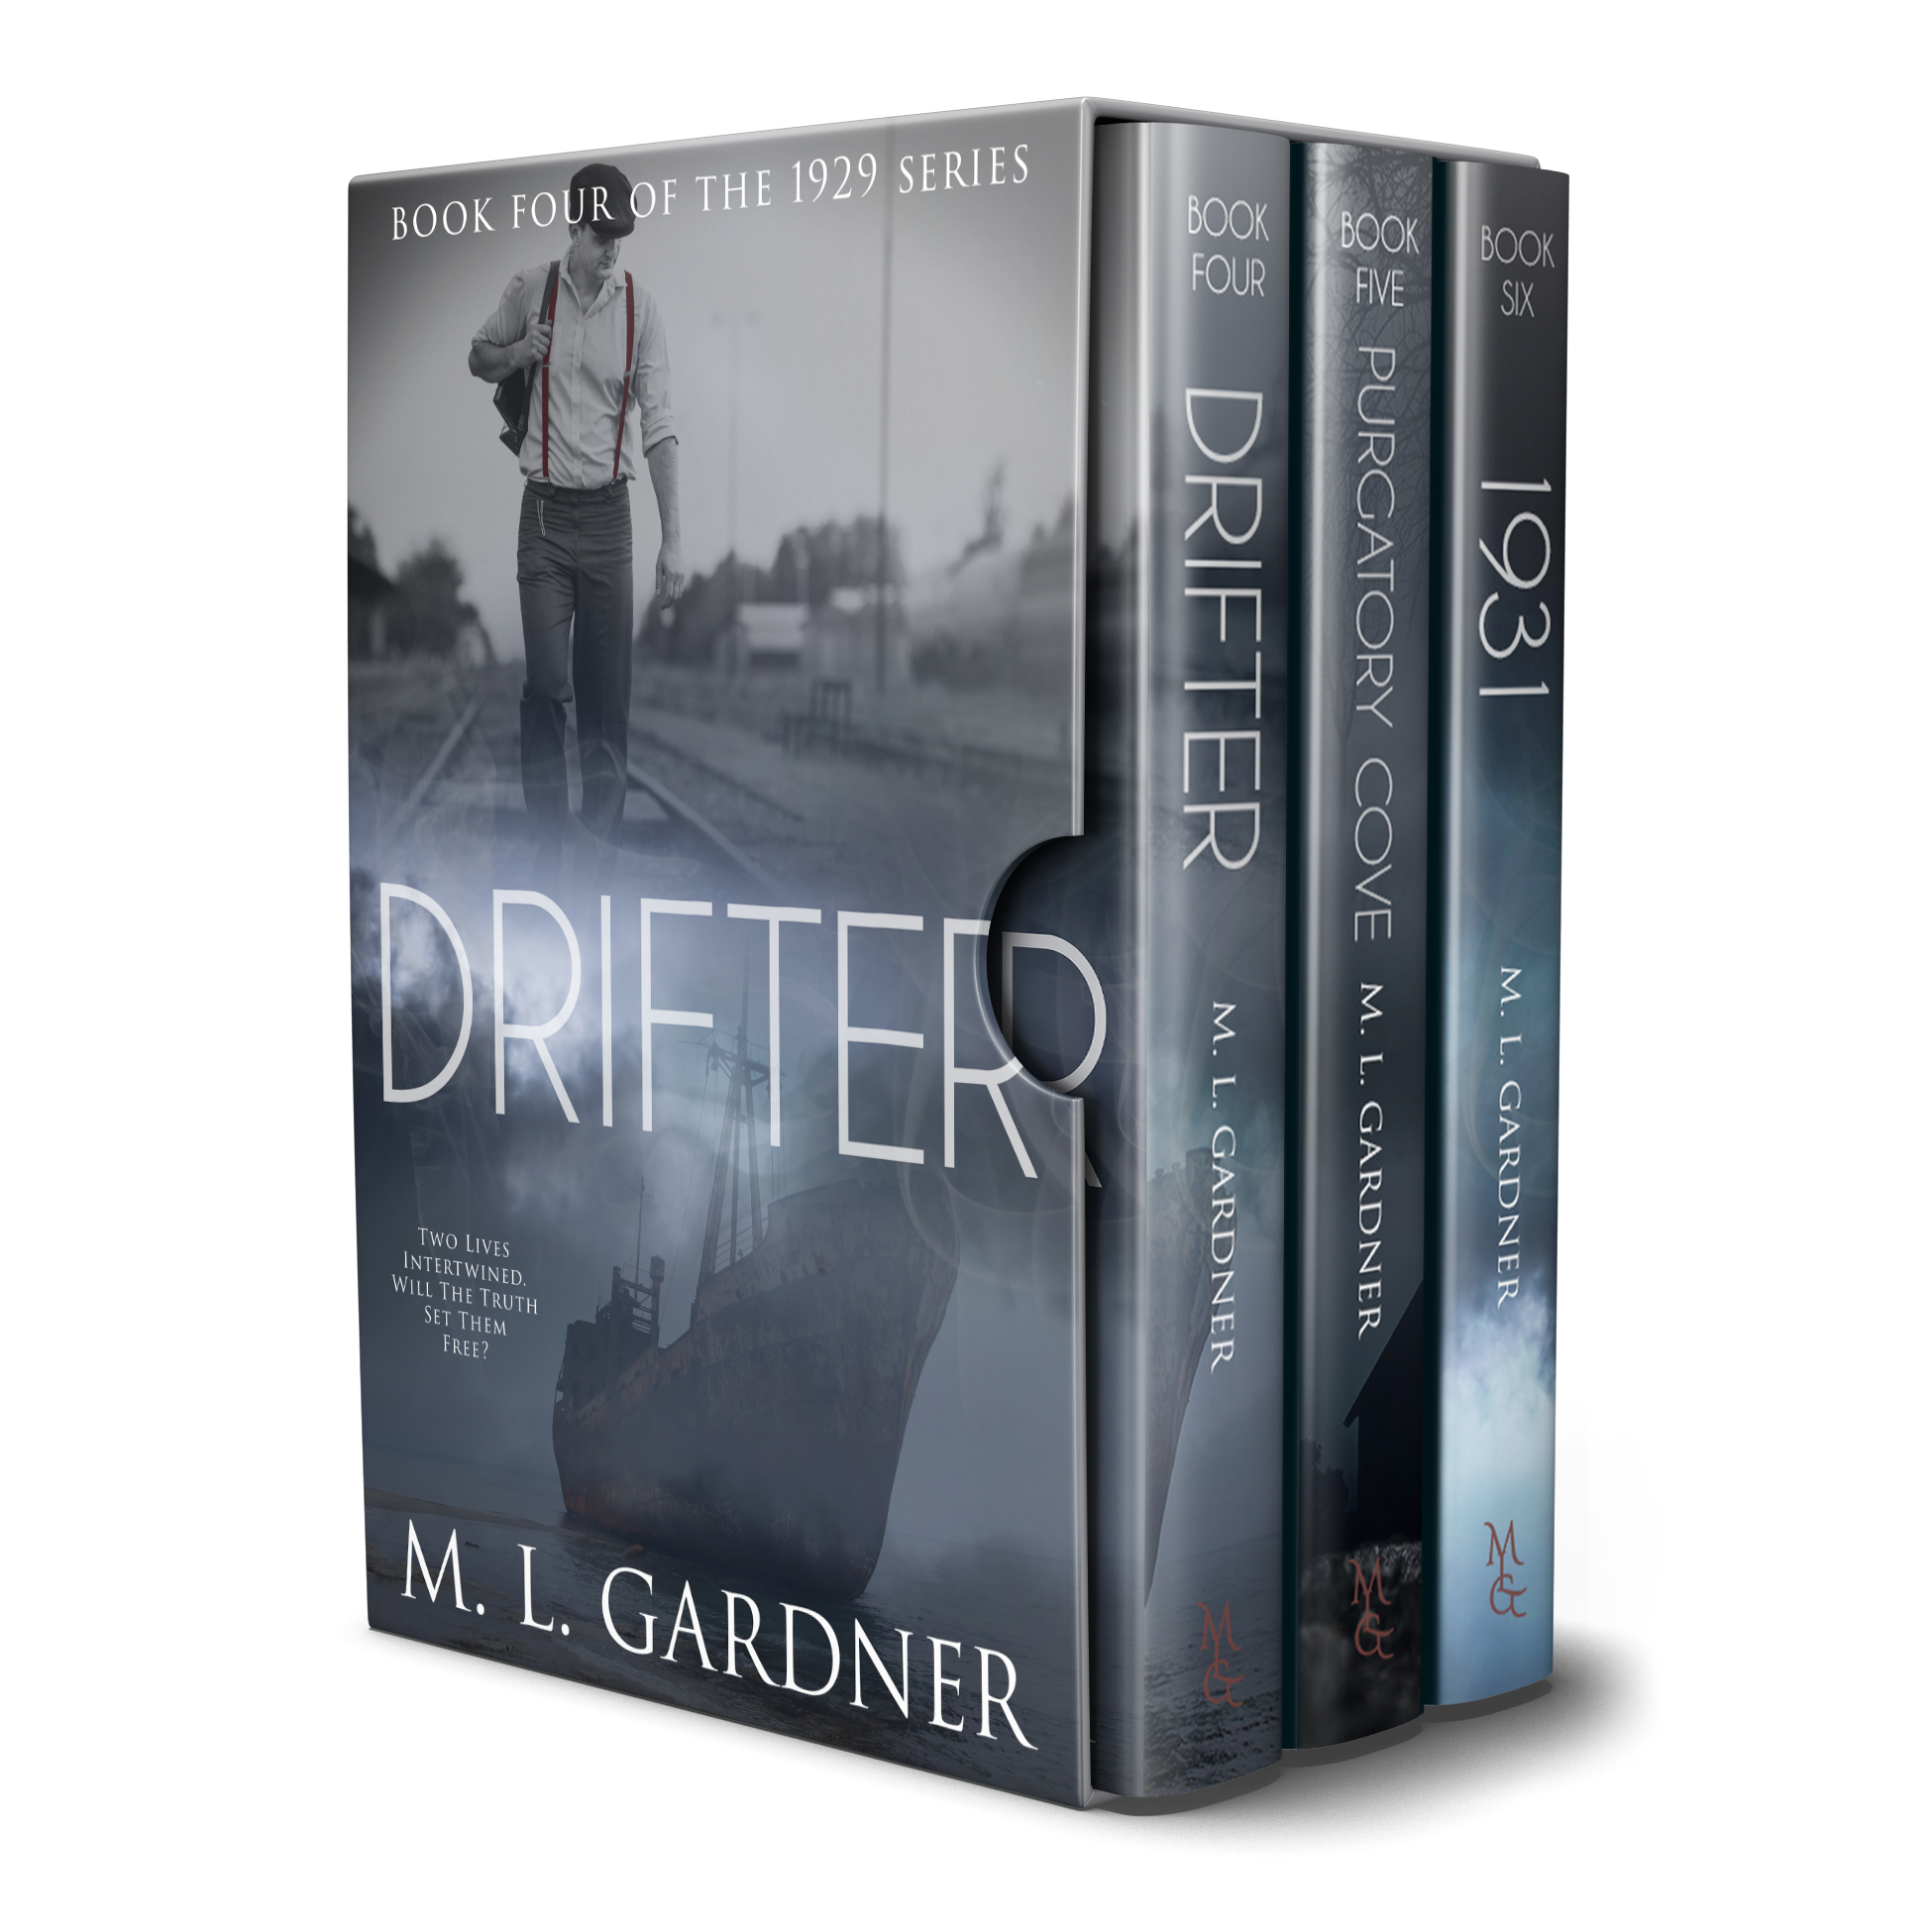 M. L. Gardner's 1929 Series Boxed Set: Books 4 - 6 || Designed by TheThatchery.com